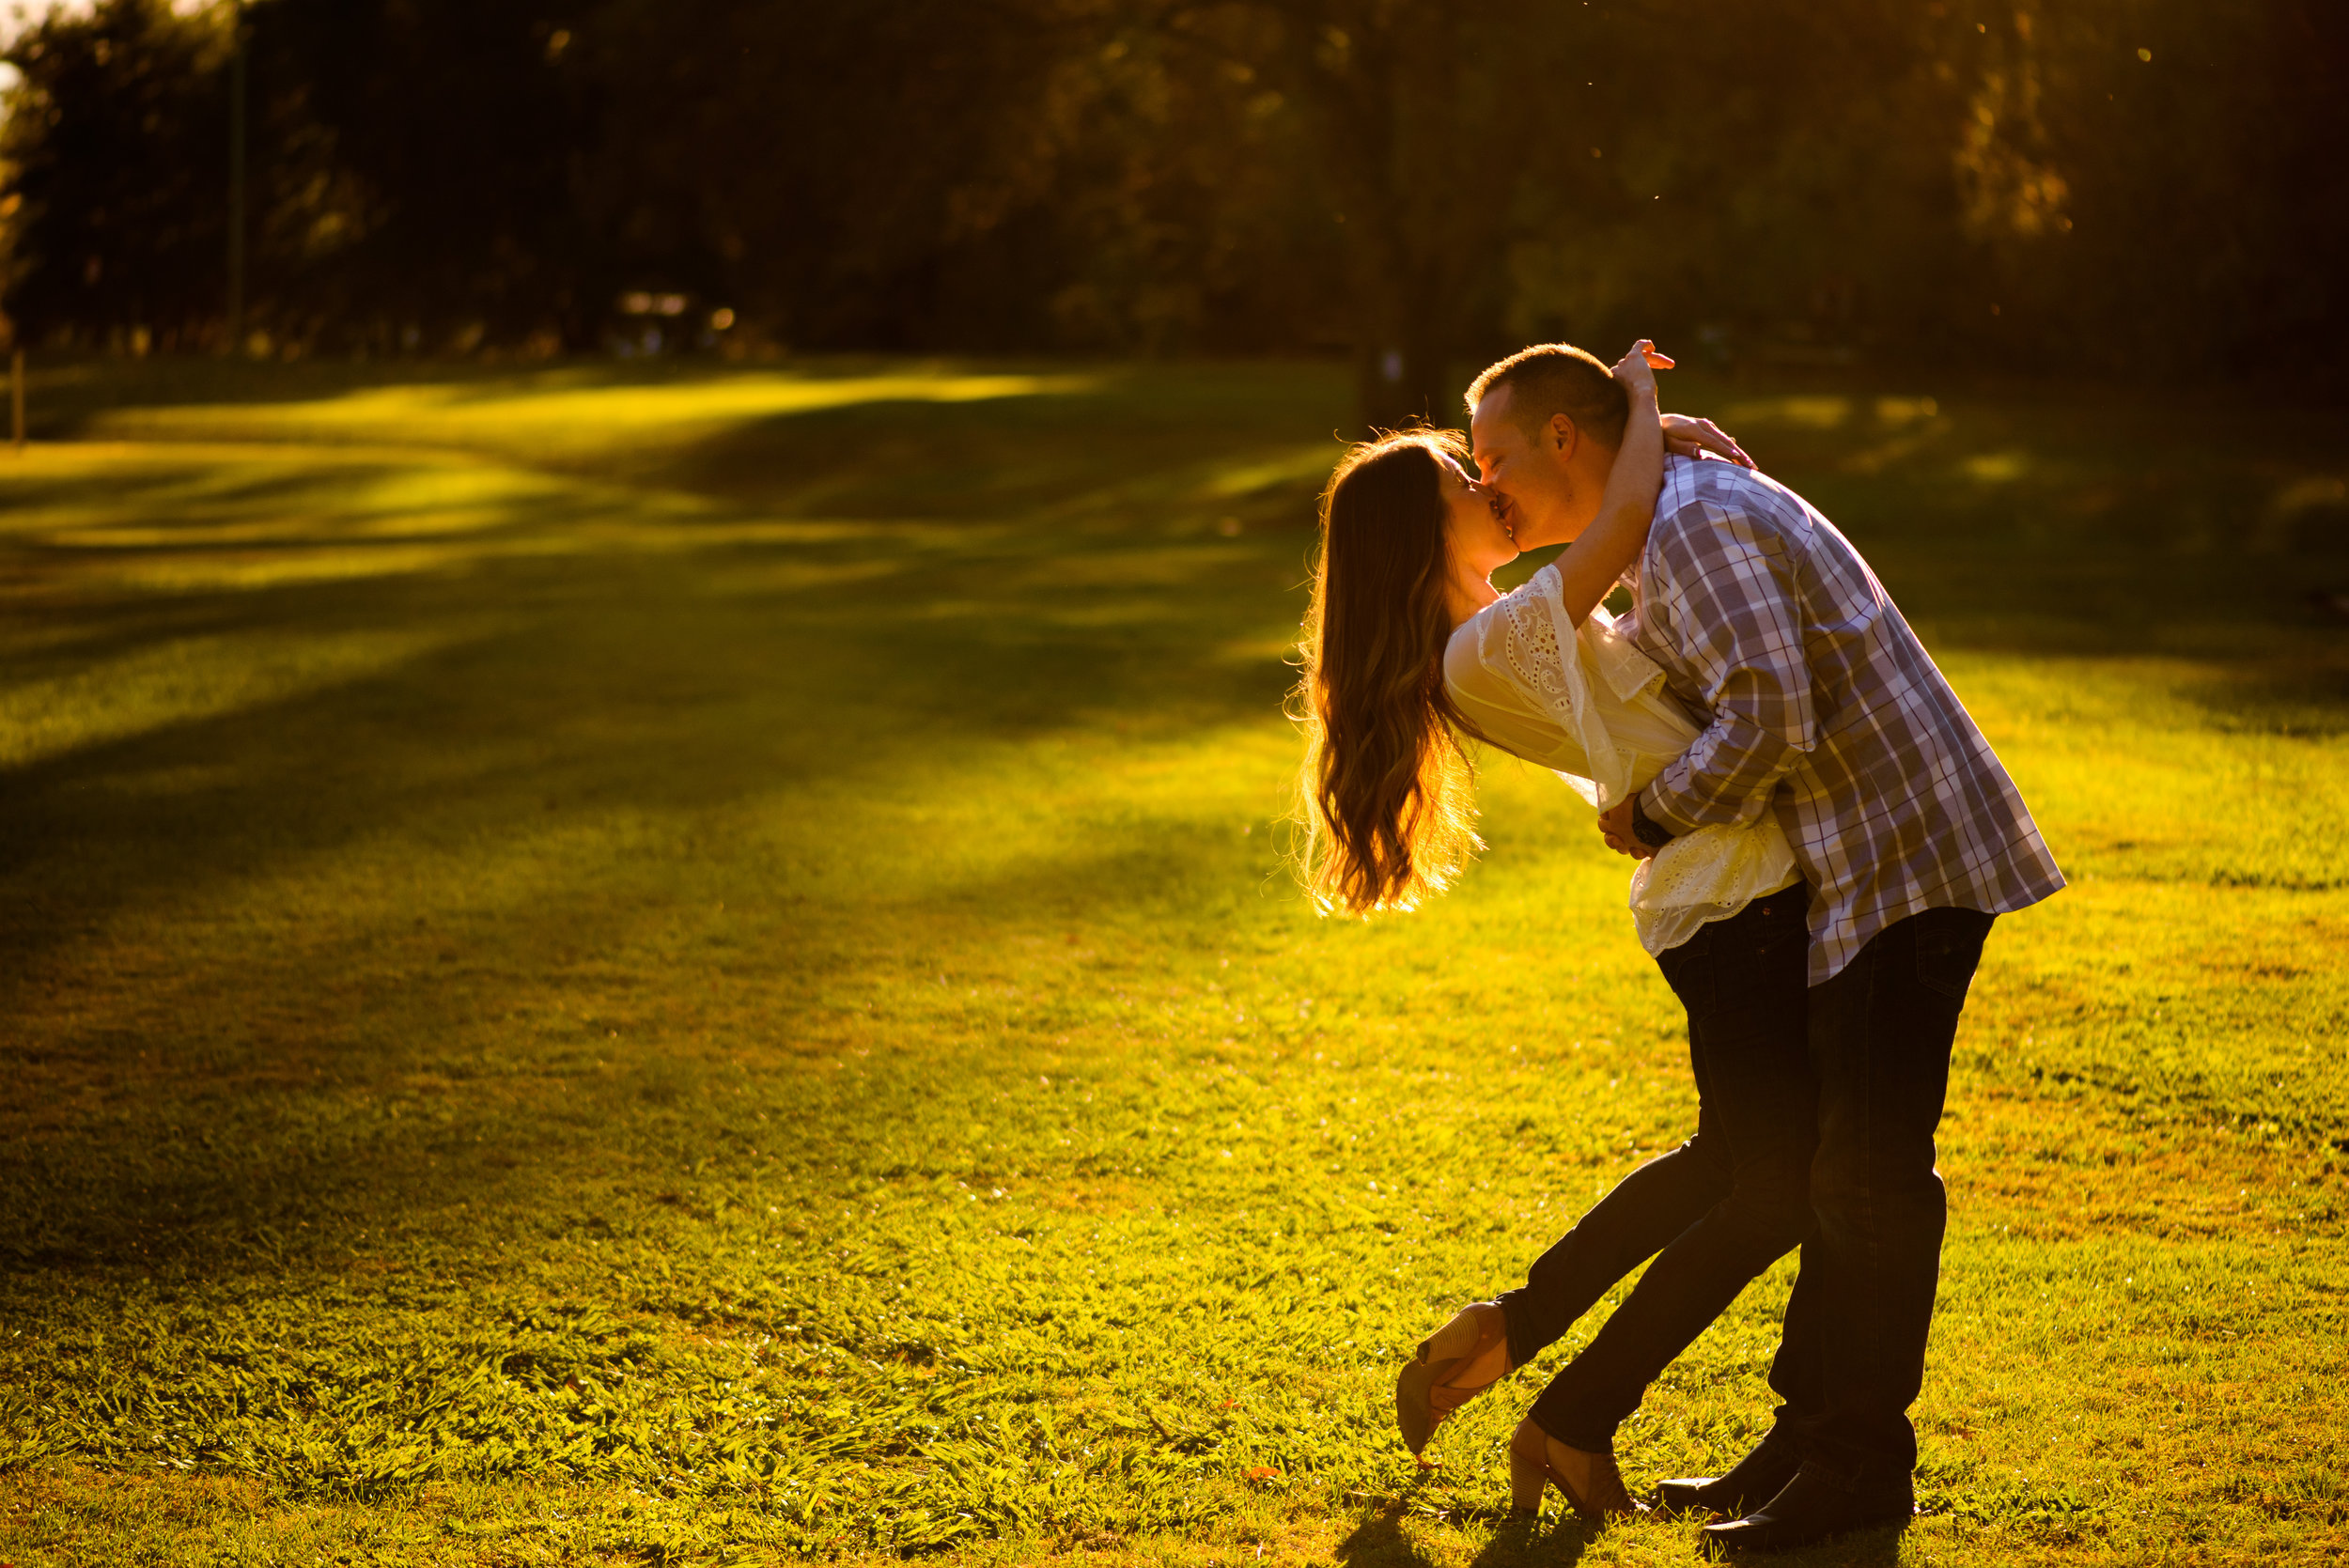 nicole-luke-003-sacramento-engagement-wedding-photographer-katherine-nicole-photography.JPG